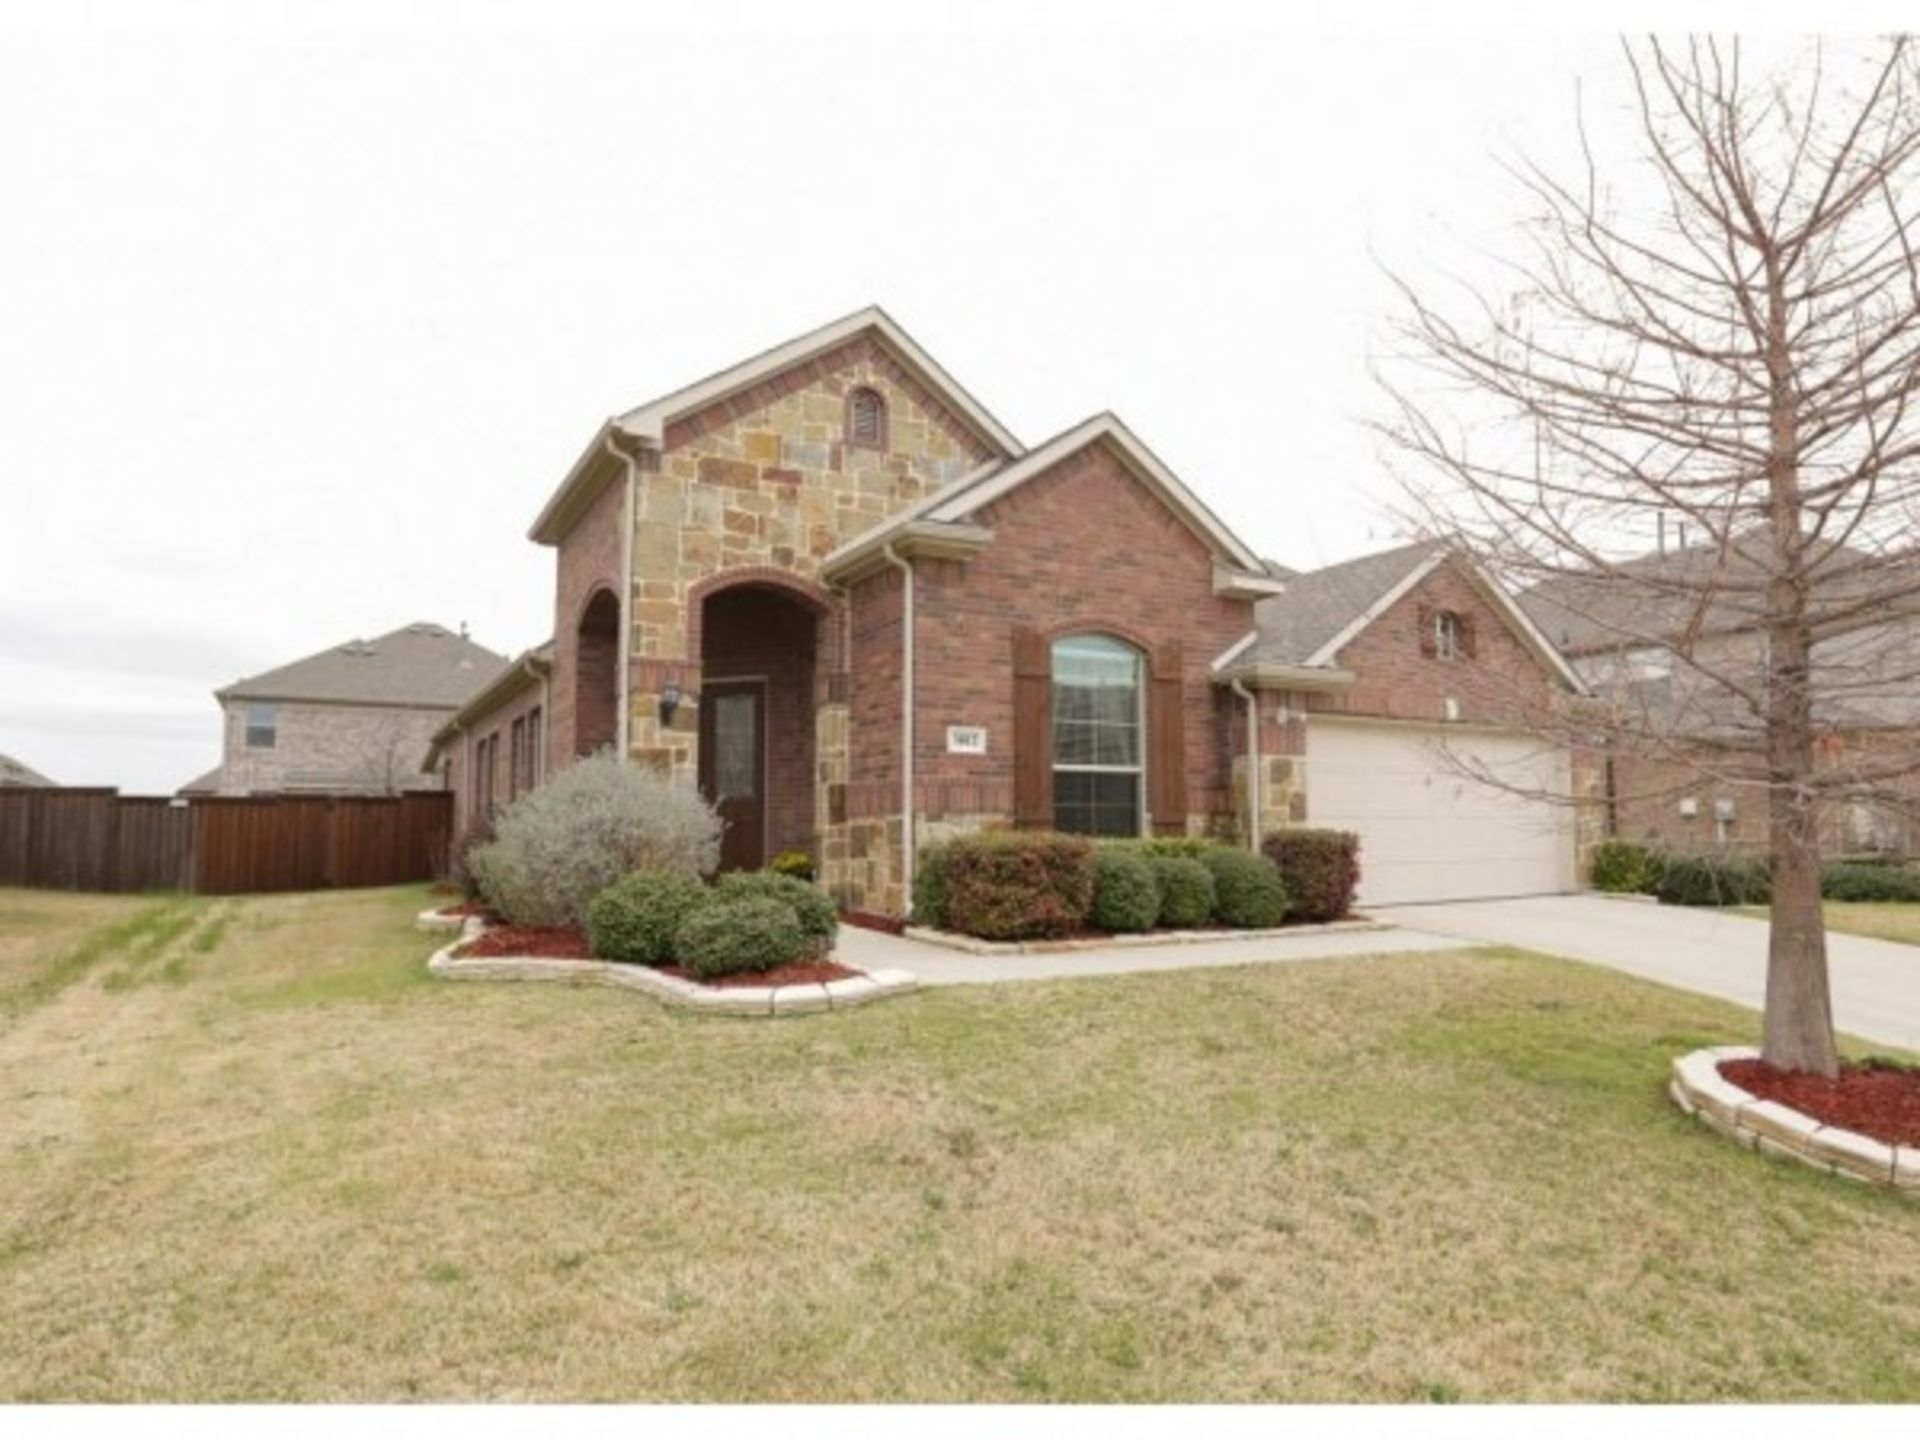 BEAUTIFUL CREEKSIDE ESTATES HOME FOR SALE IN WYLIE TEXAS 3012 NATHAN DR.